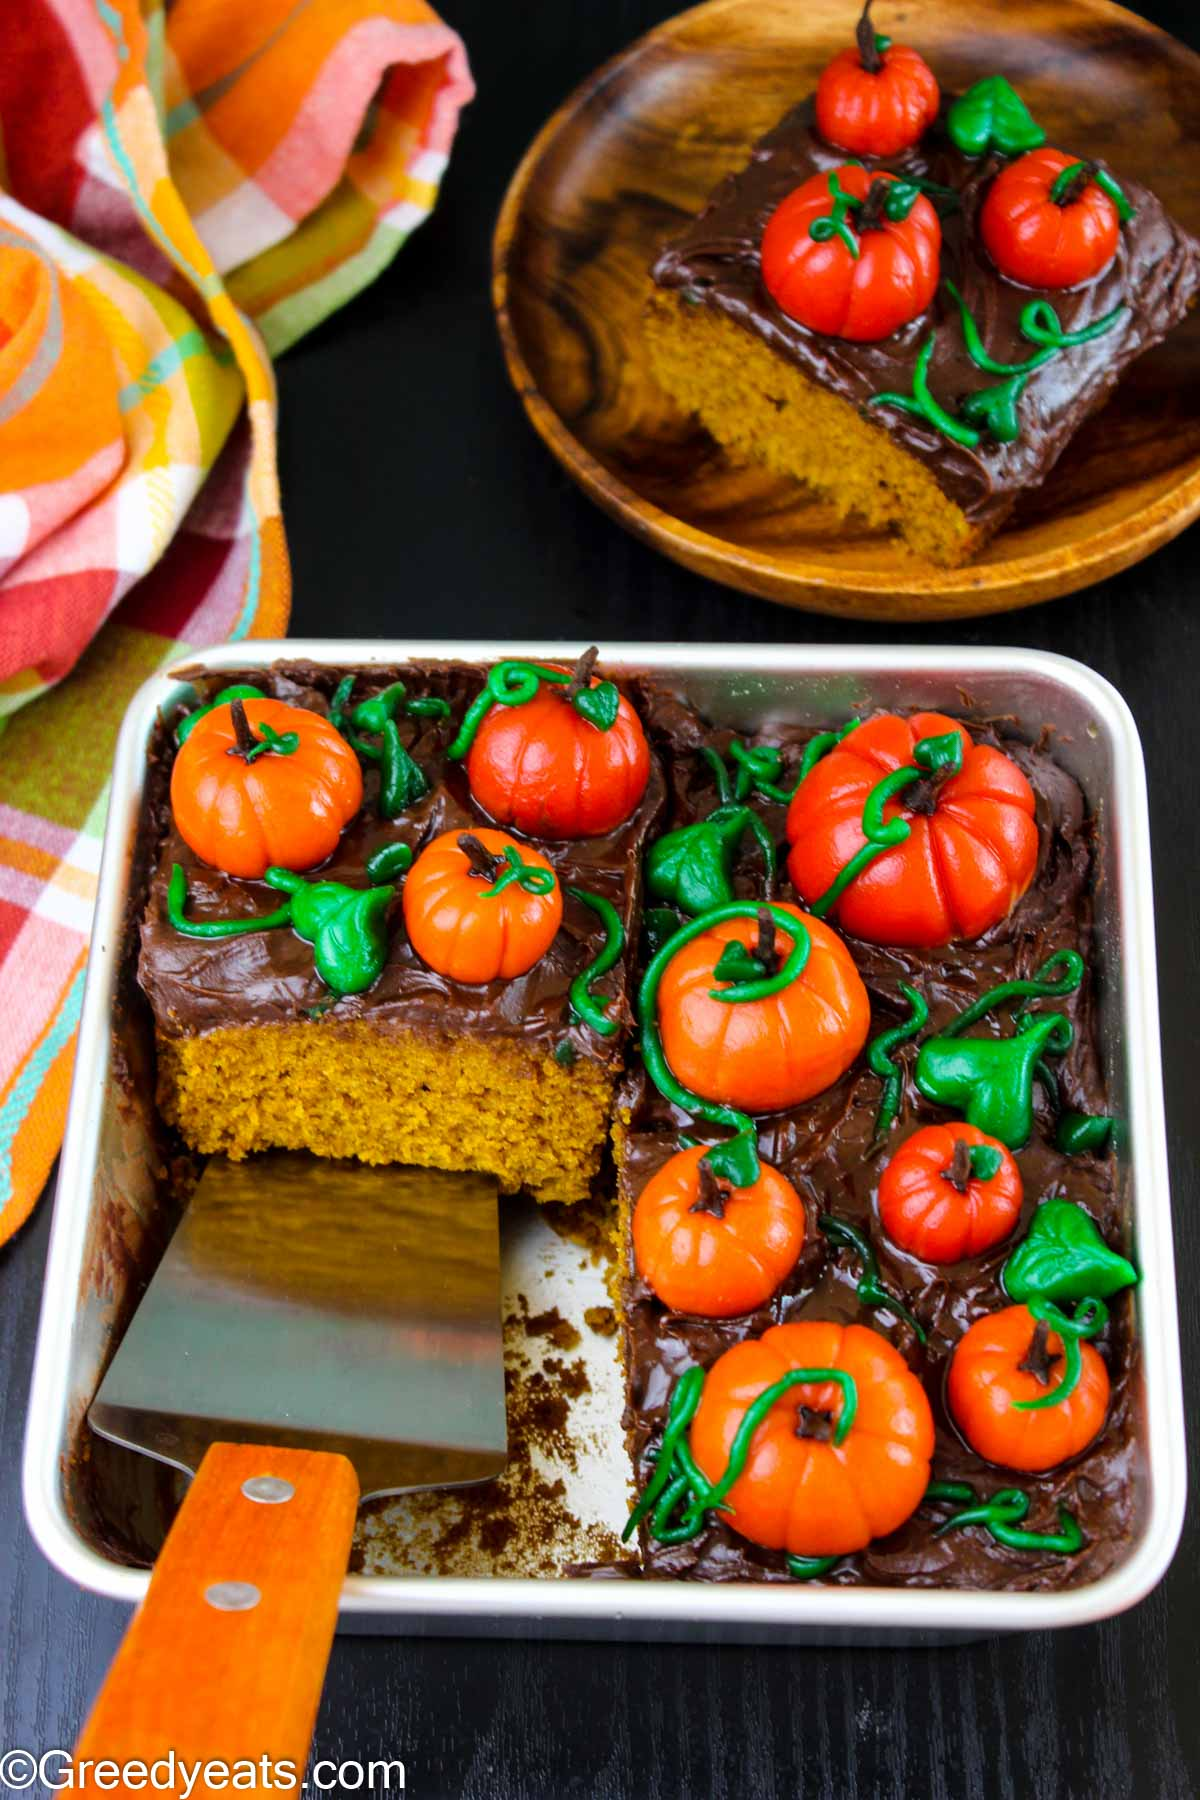 Soft and moist Pumpkin Cake frosted with whipped ganache and fondant pumpkins.